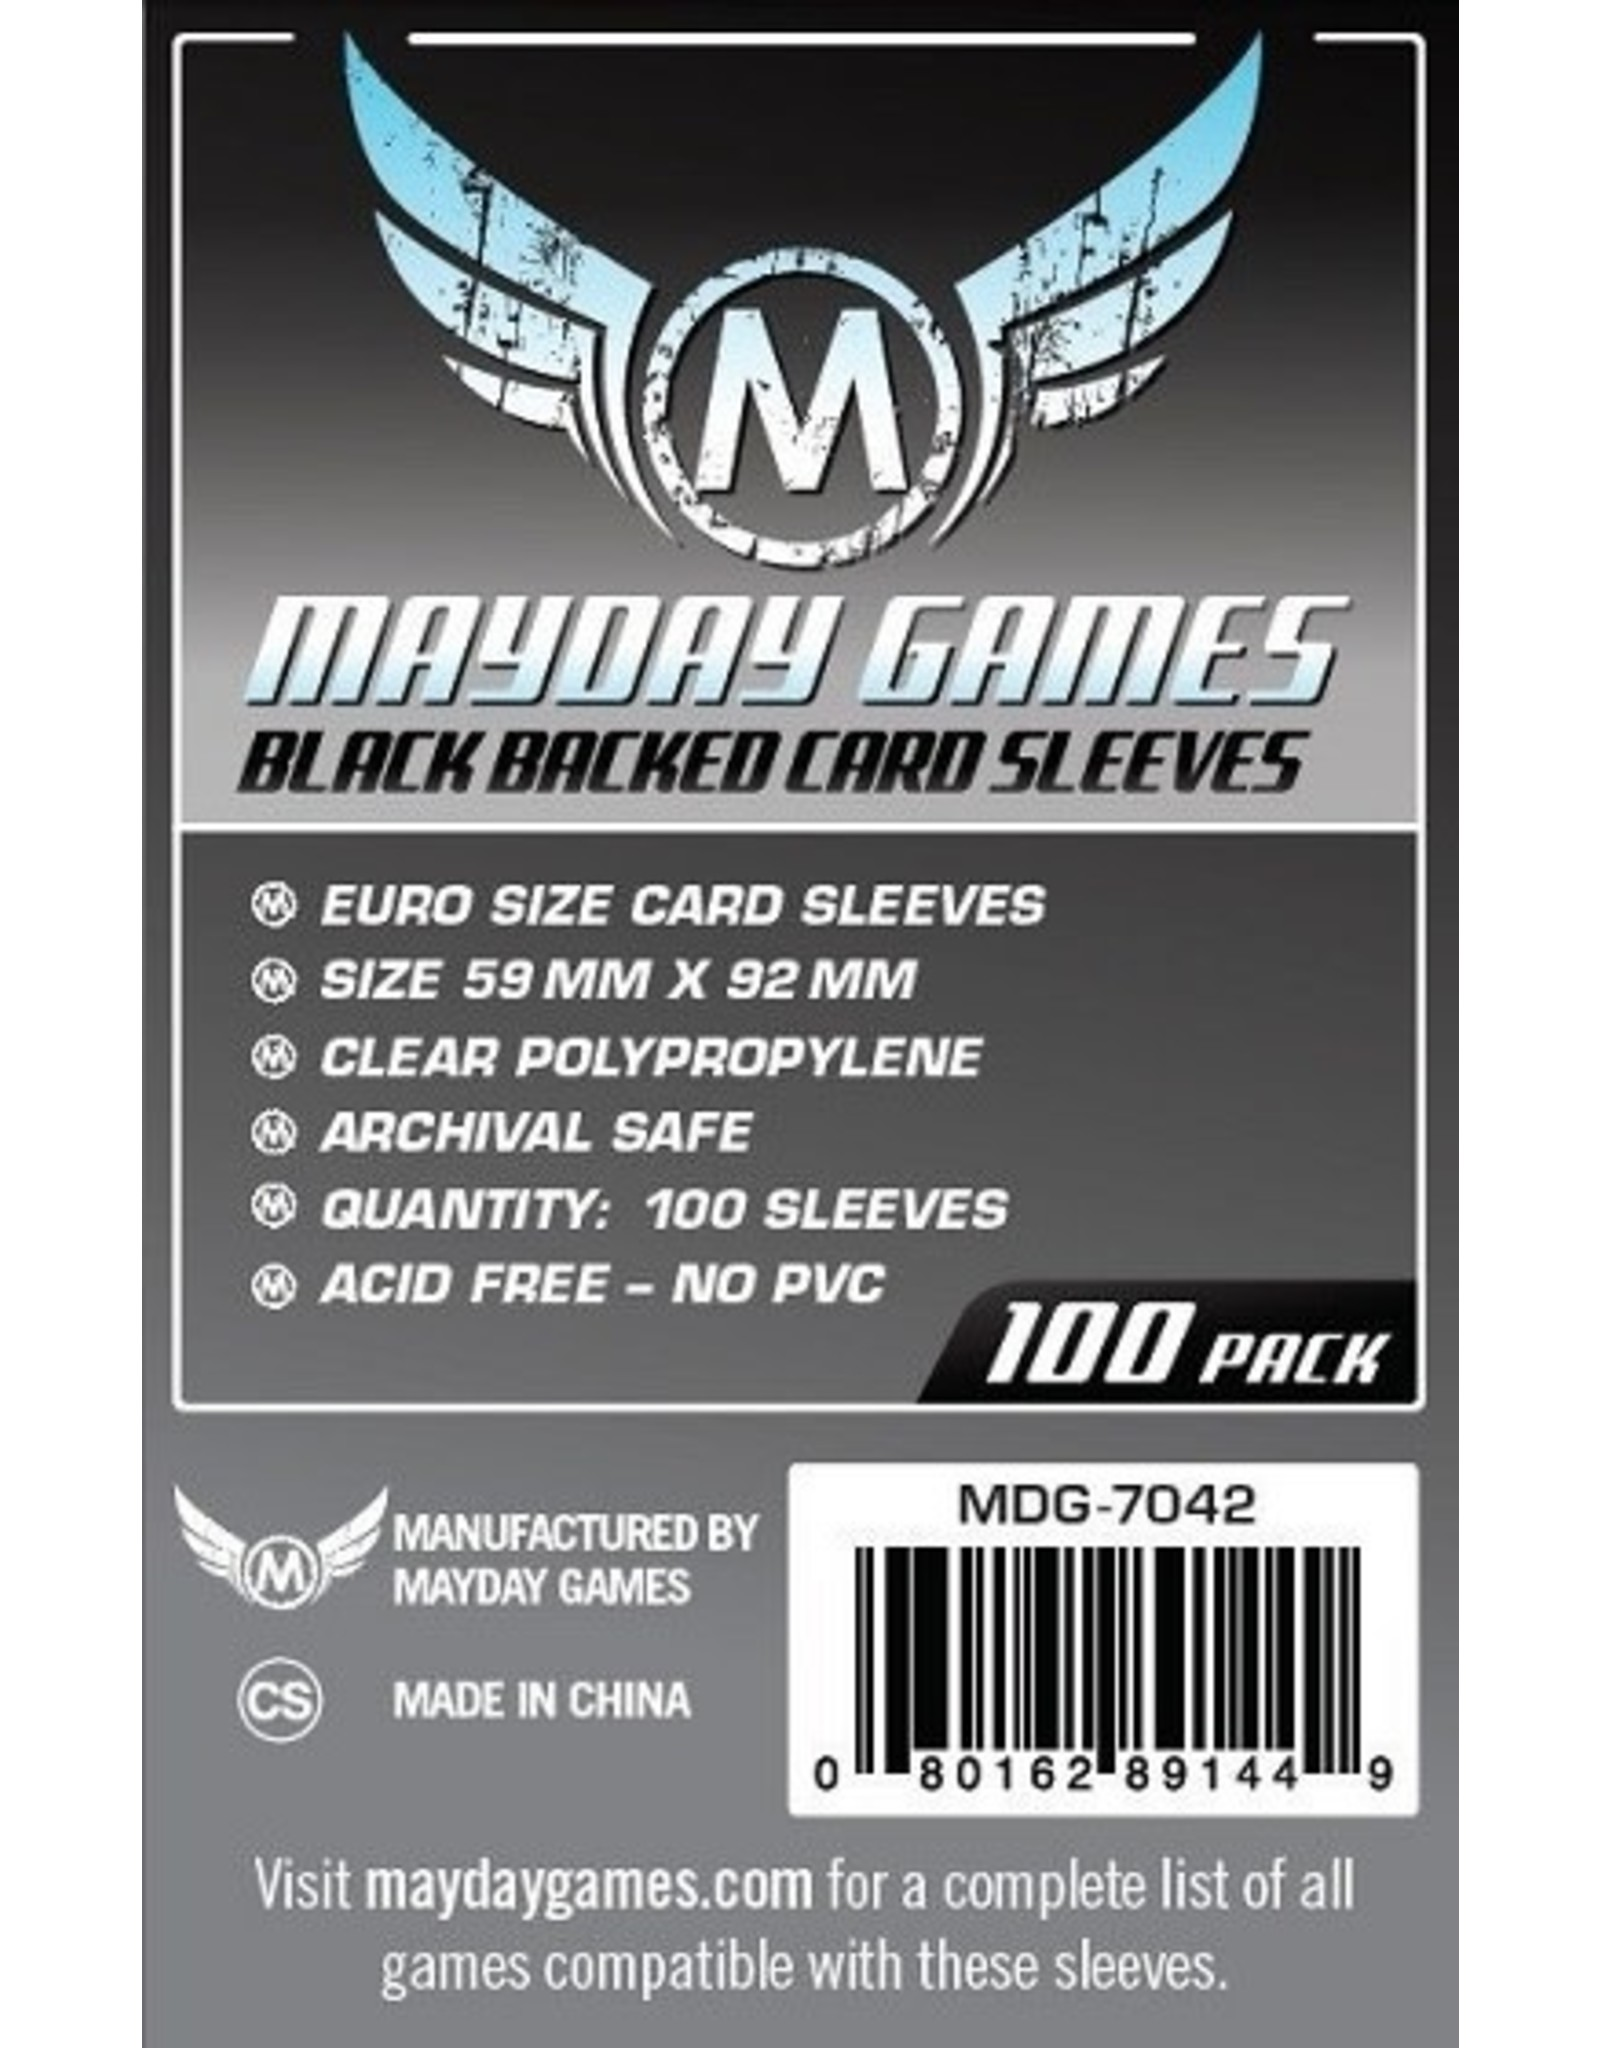 Mayday BLACK BACKED EURO SLEEVES 59mm x 92mm 100CT